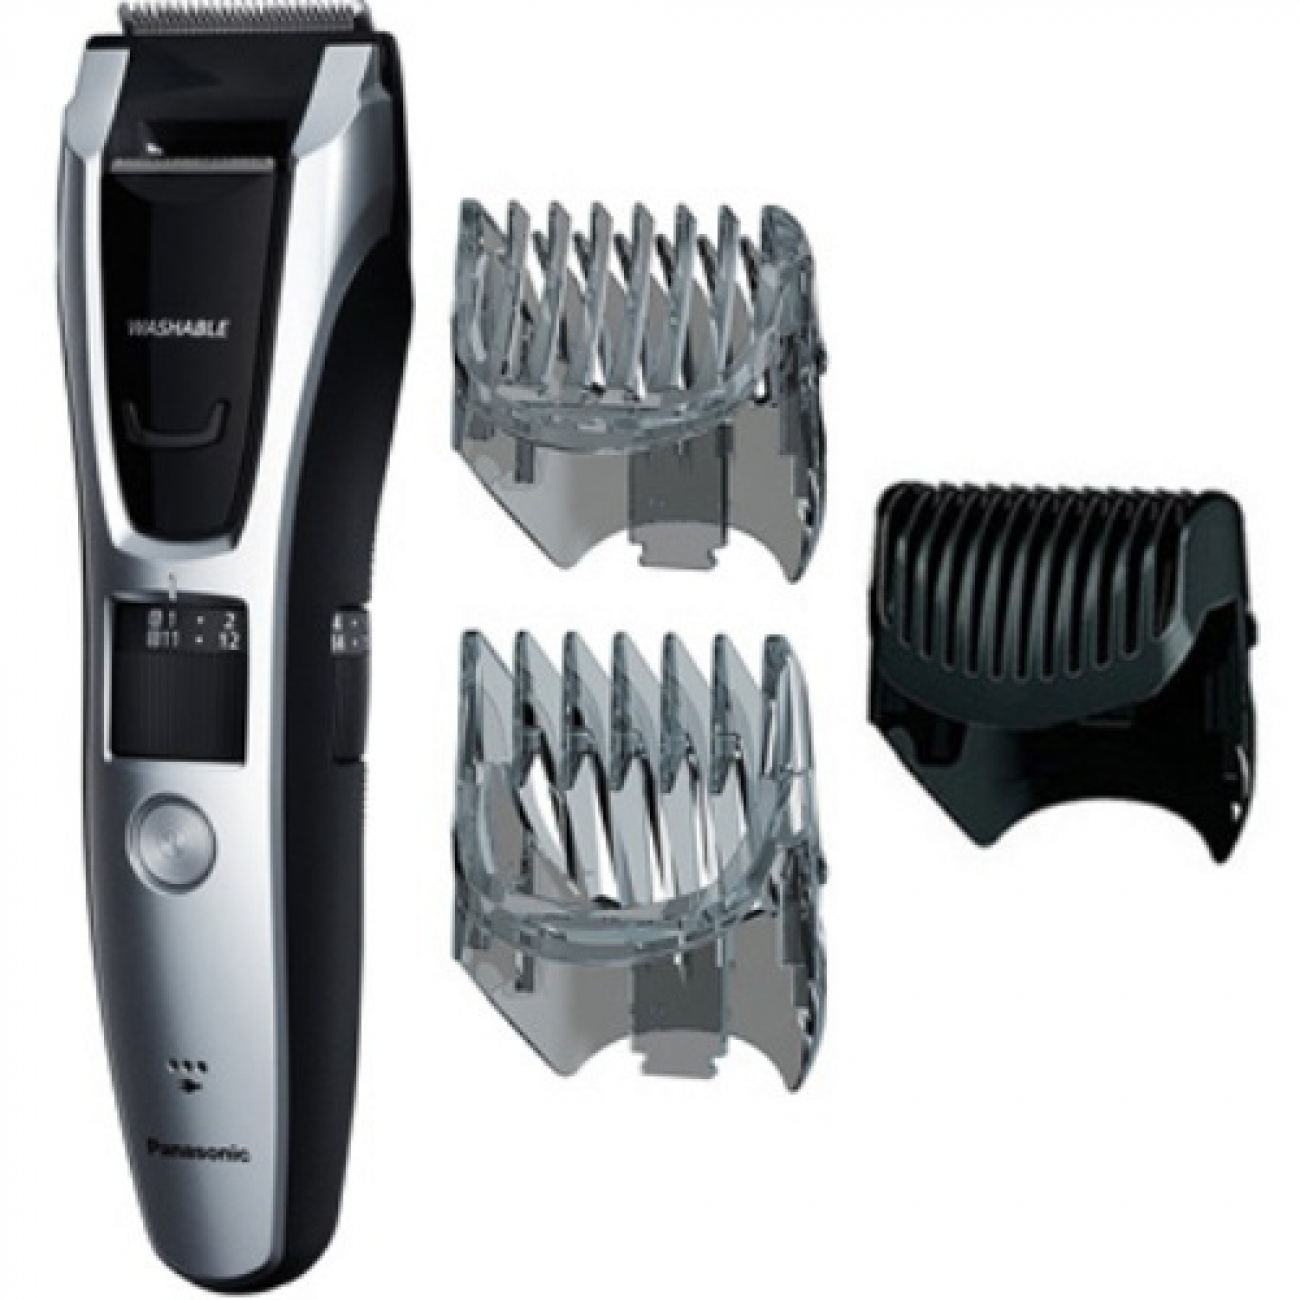 Panasonic Precision Body/Face/Hair Trimmer